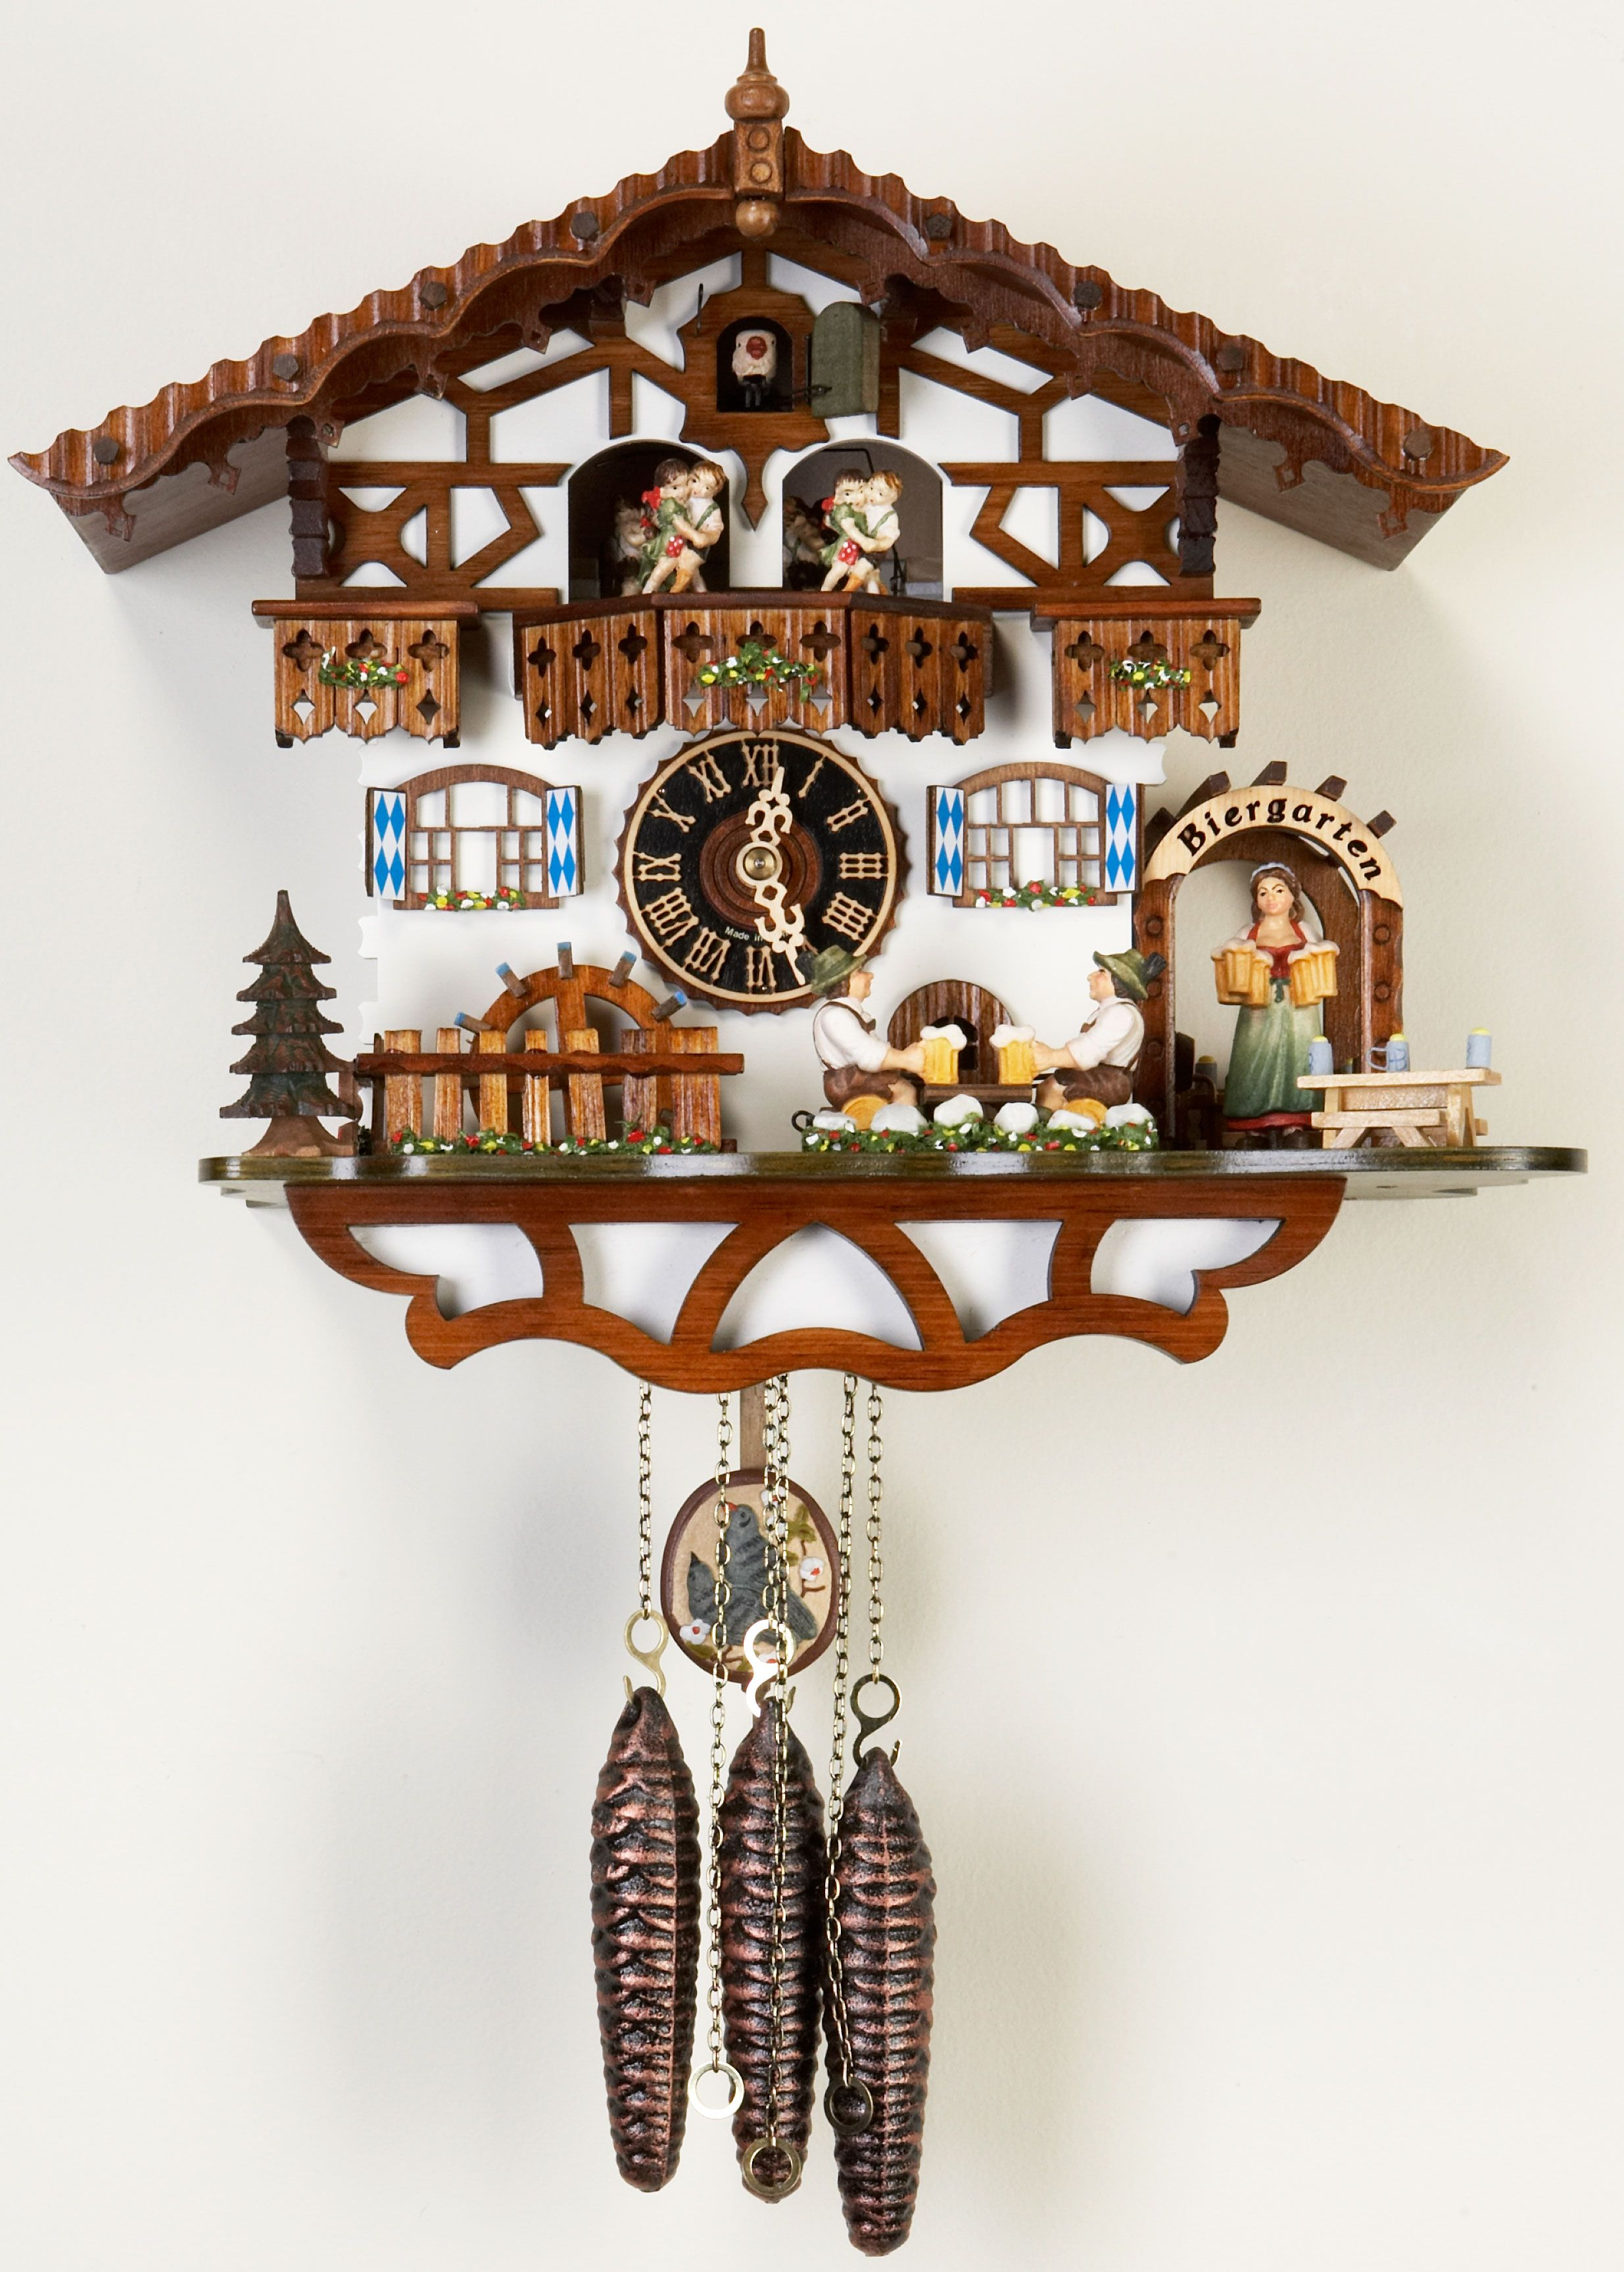 cuckoo clock pictures each hour the number of hours precision brass 1 day weight